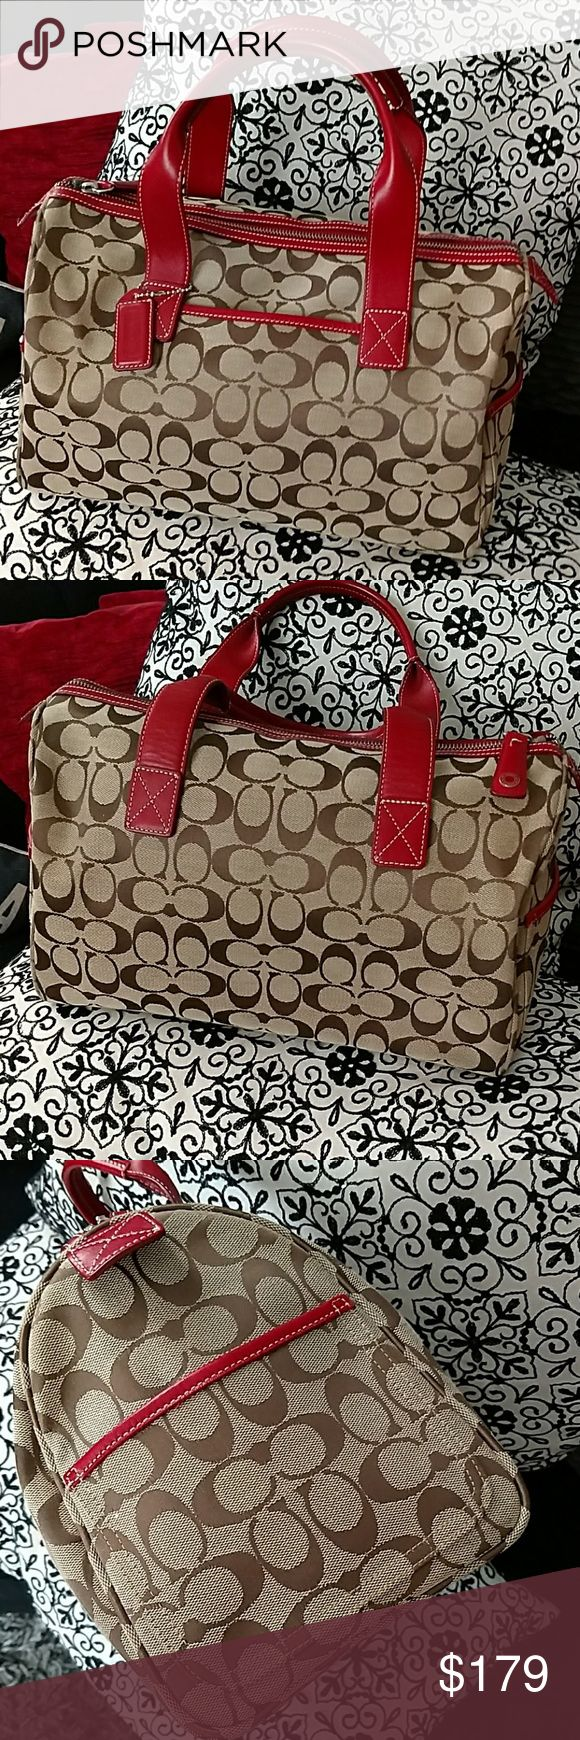 Coach speedy boston satchel like new This bag is super cute and rare. It's coaches version of the Louis Vuitton speedy and the Gucci Boston. It's the beige signature monogram with red leather trim. The satchel is my favourite style bag so this might end up back in my closet. Price is firm Coach Bags Satchels